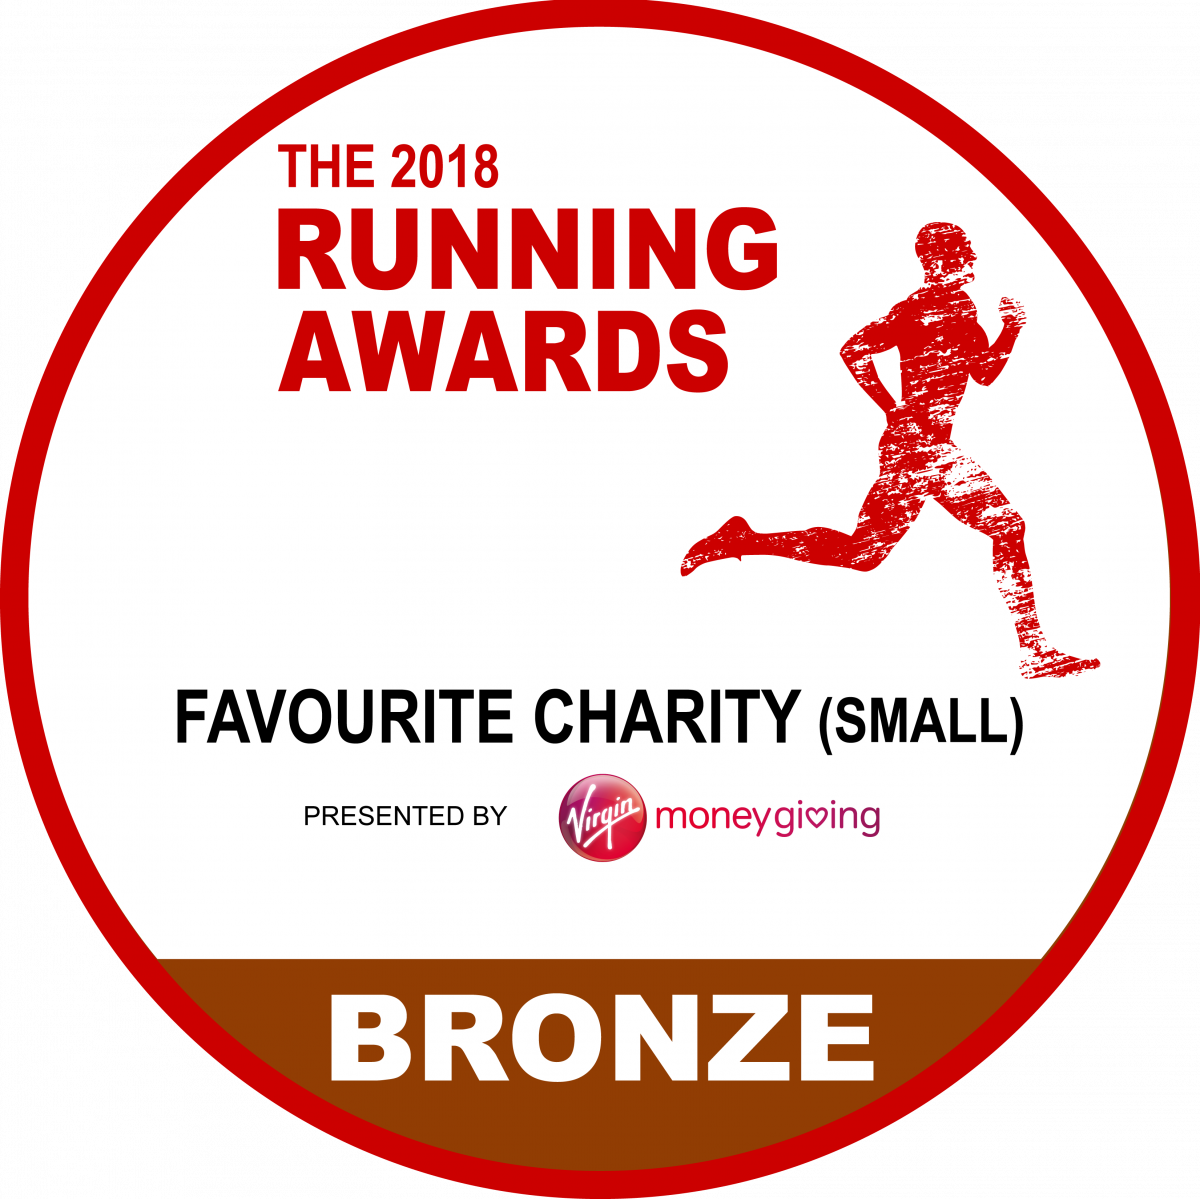 Running awards 2018 best small charity BRONZE logo